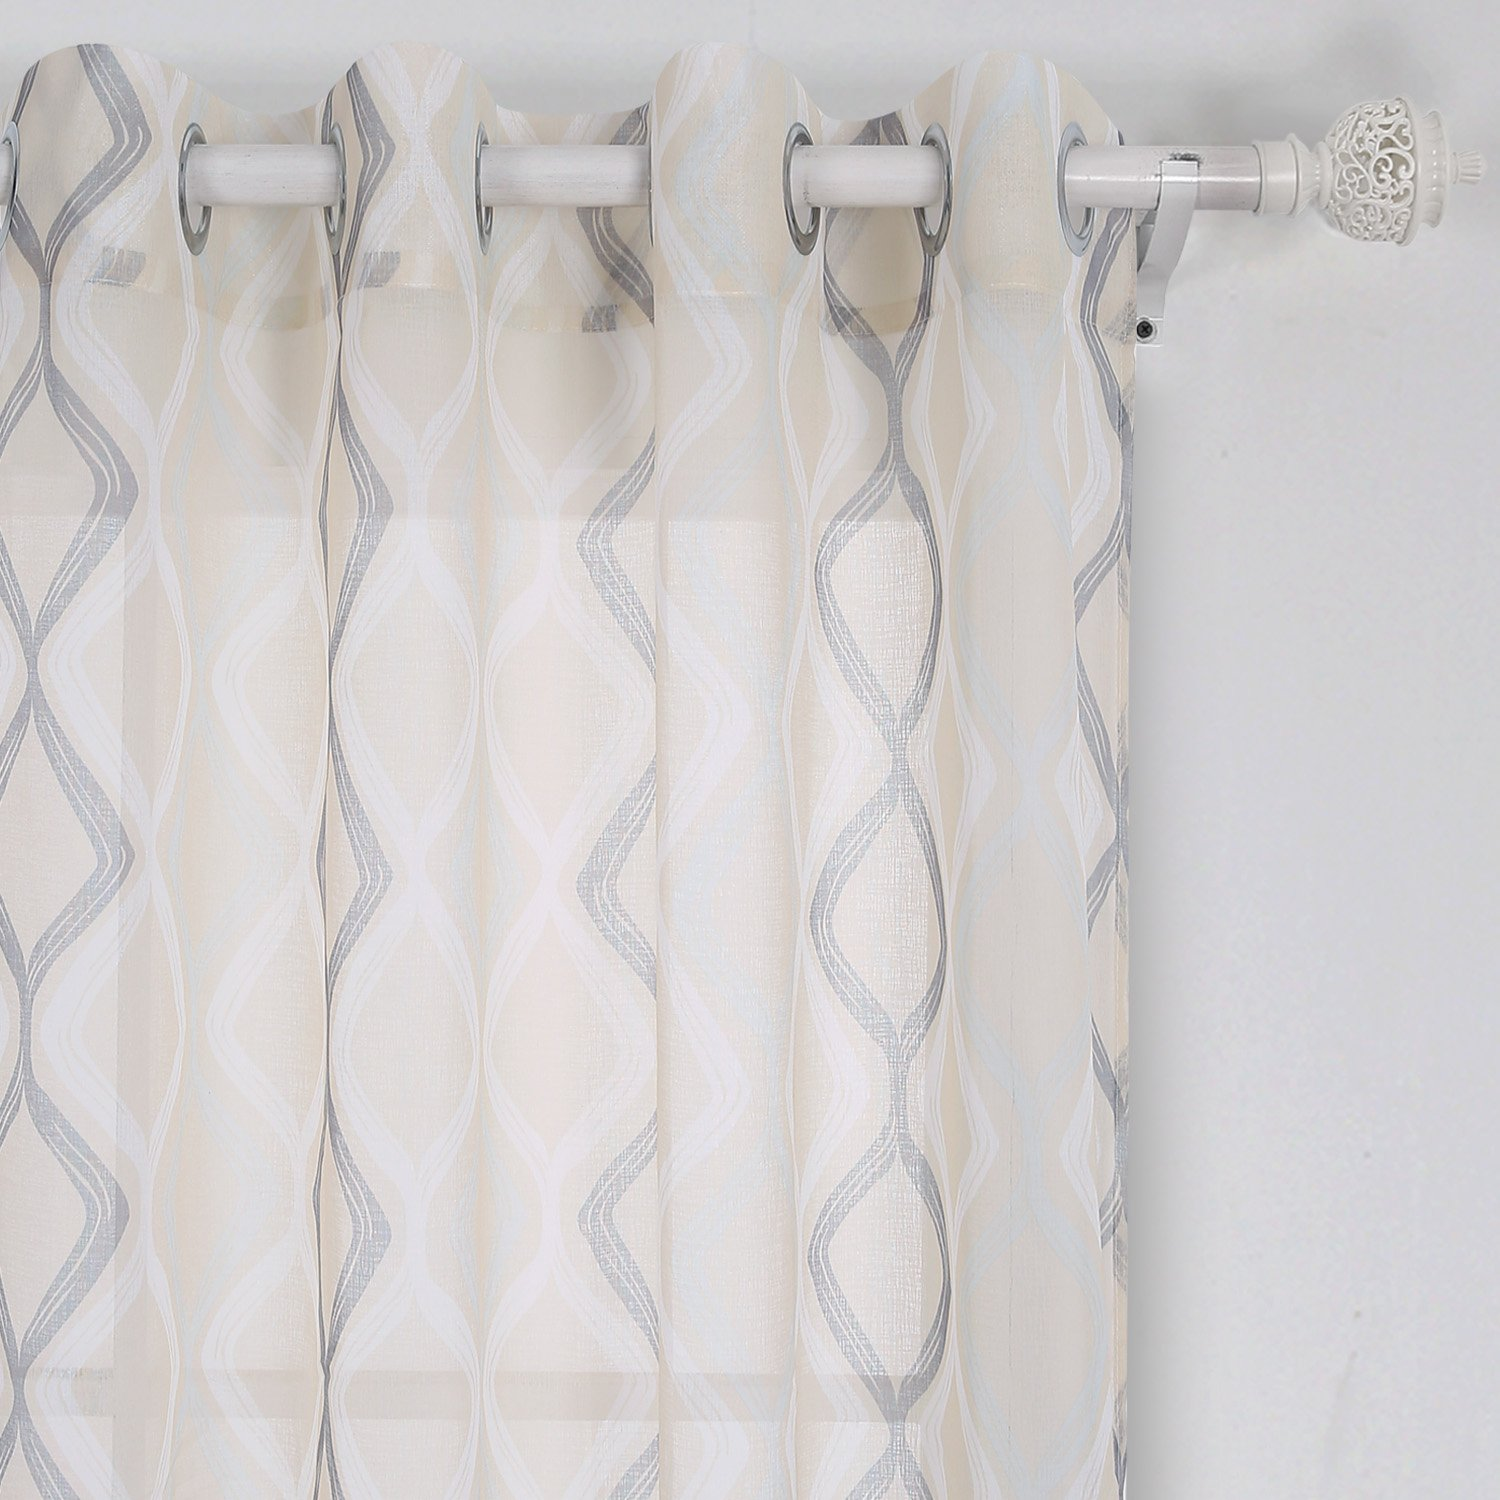 Deconovo Decorative Light Filtering Wave Print Woven Voile Panel Sheer Window Curtains